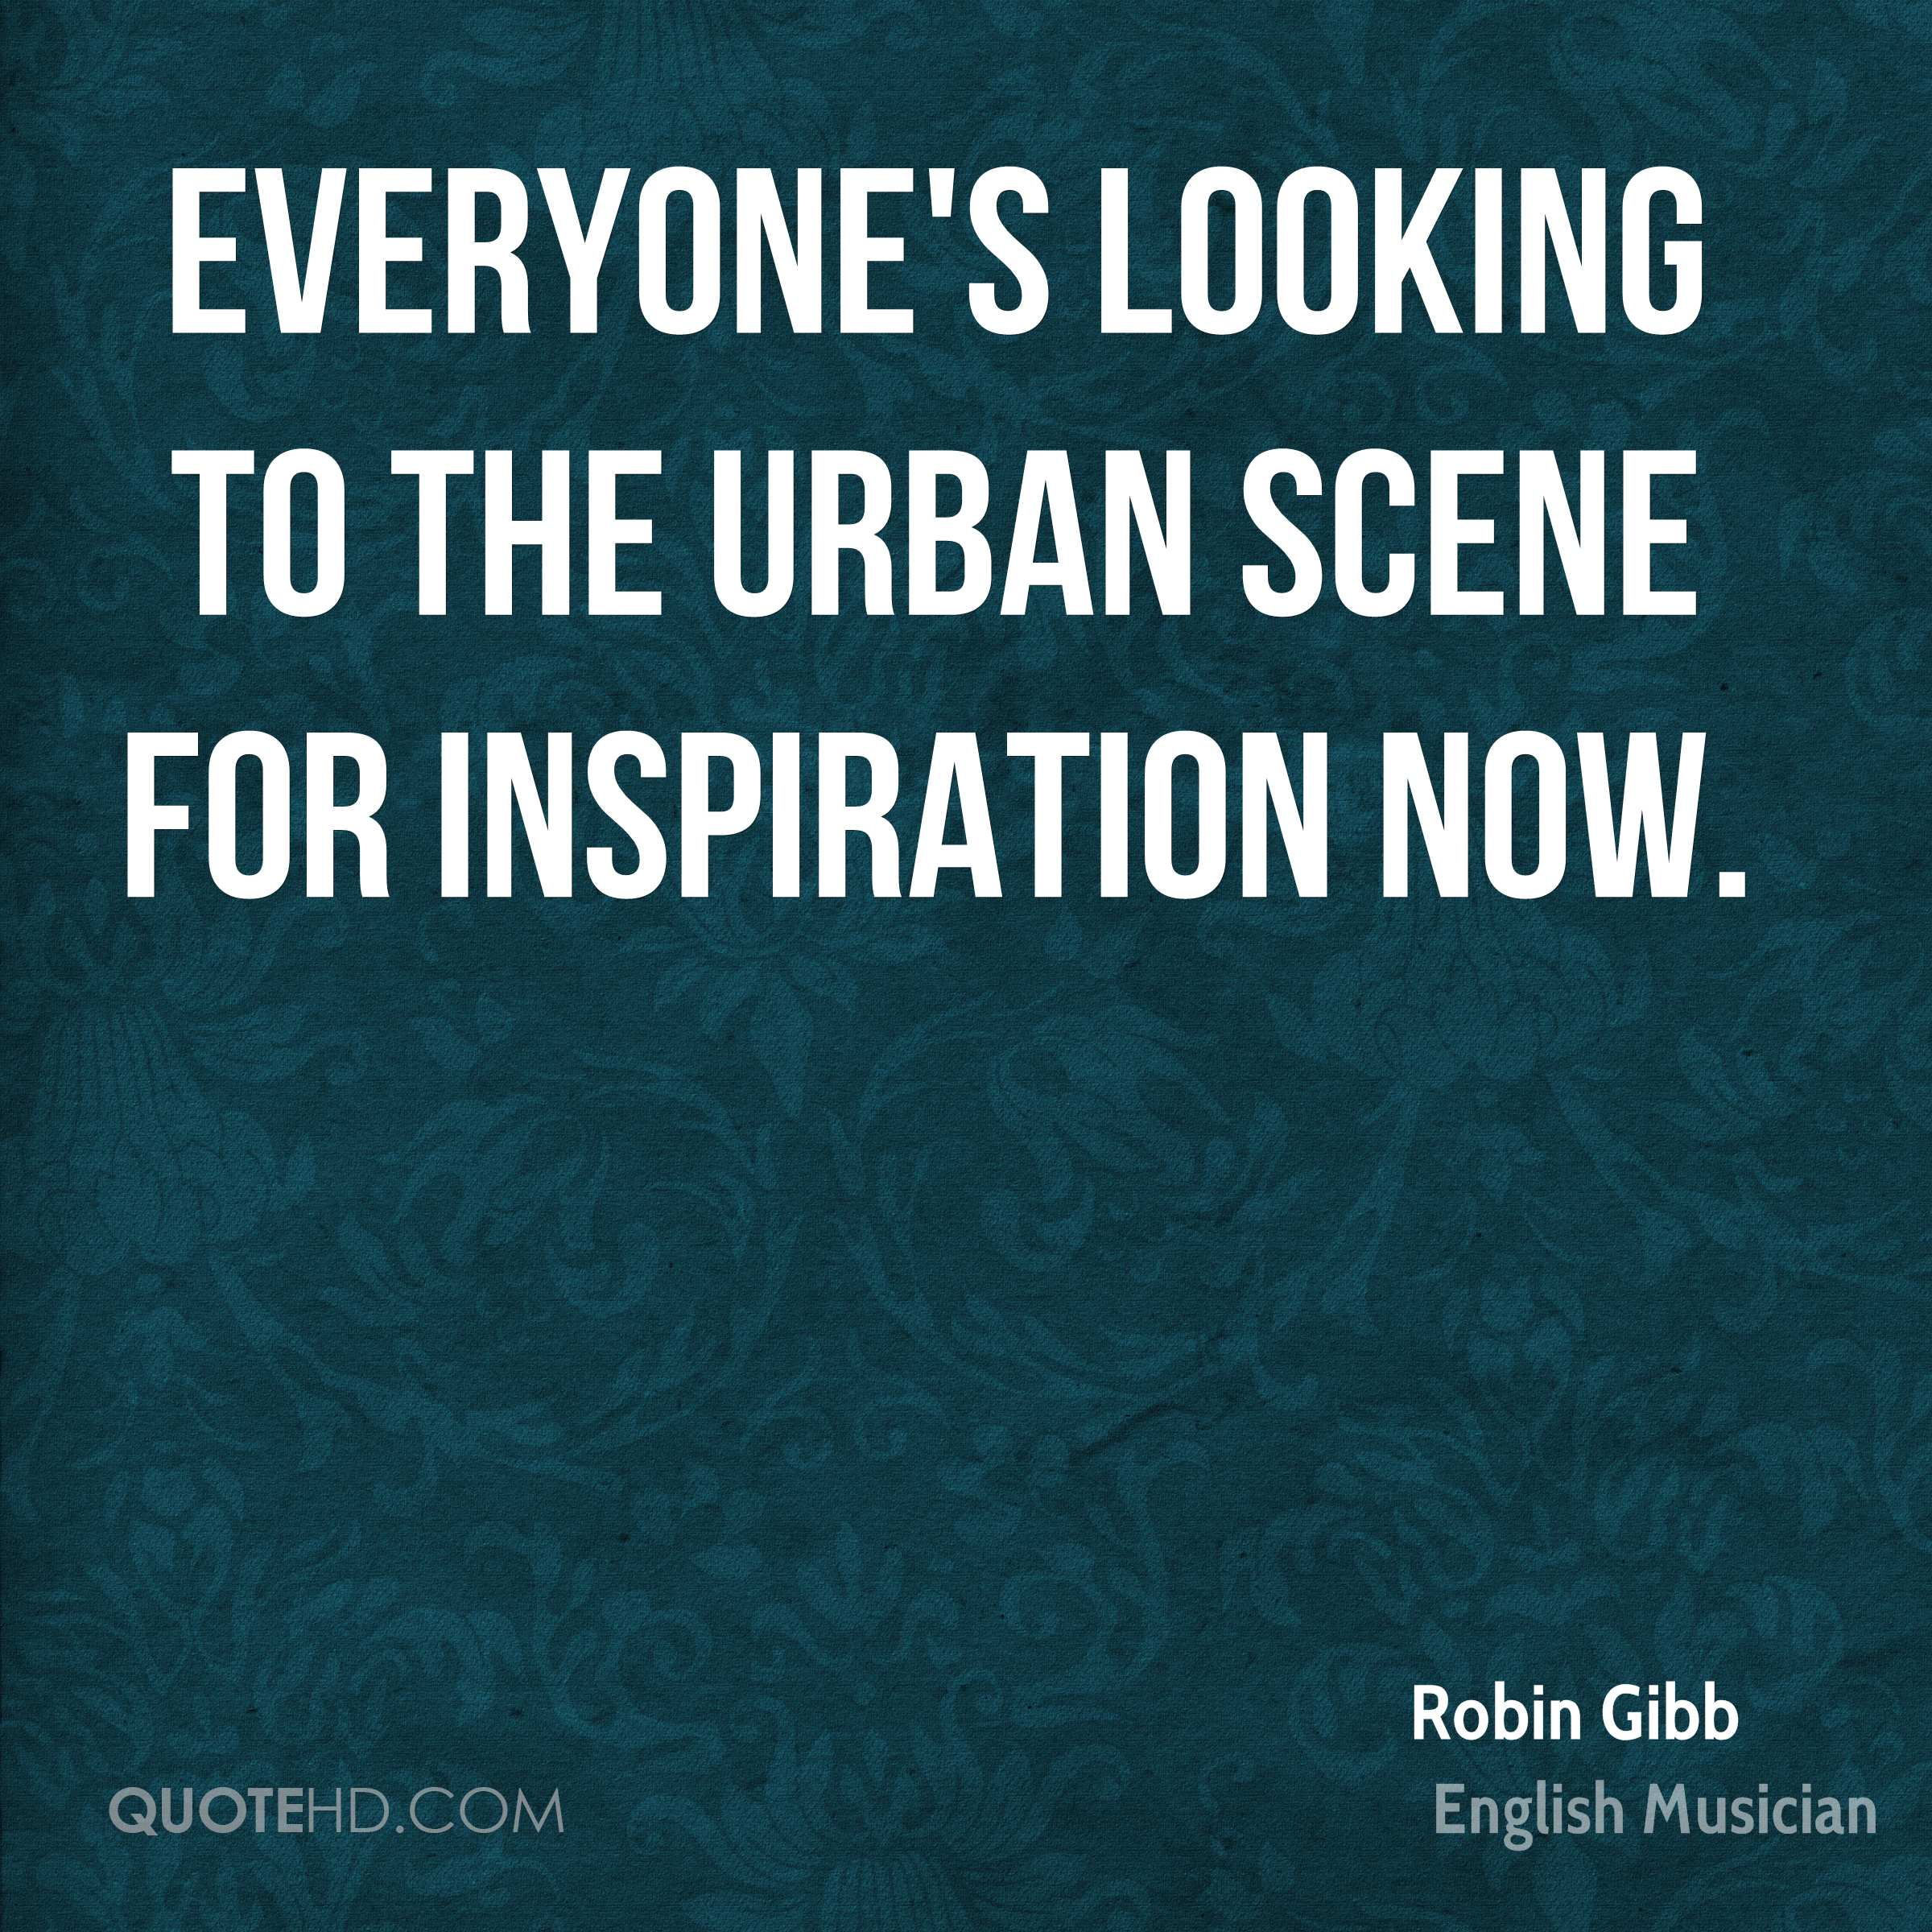 Everyone's looking to the urban scene for inspiration now.